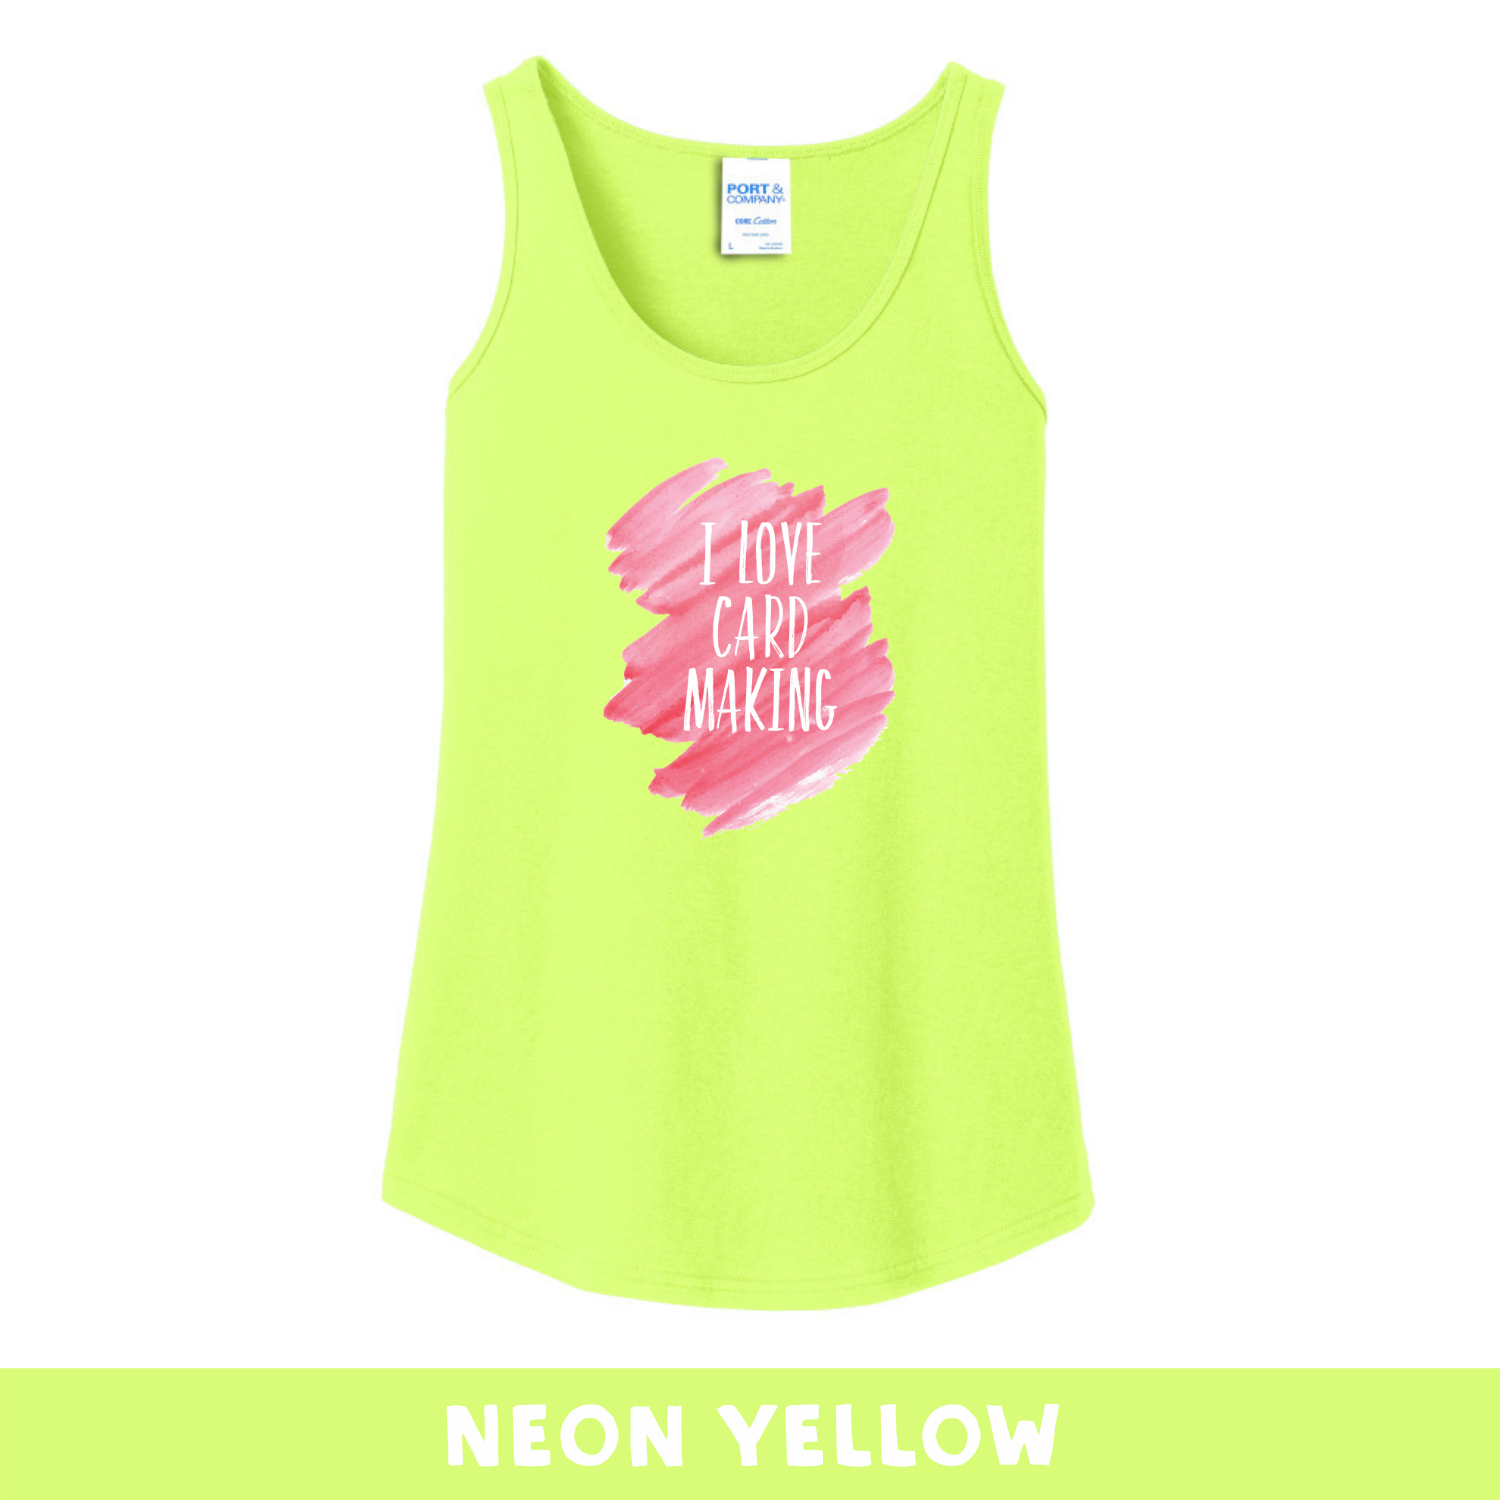 Neon Yellow - Woman's Cut Tank Top - I Love Cardmaking